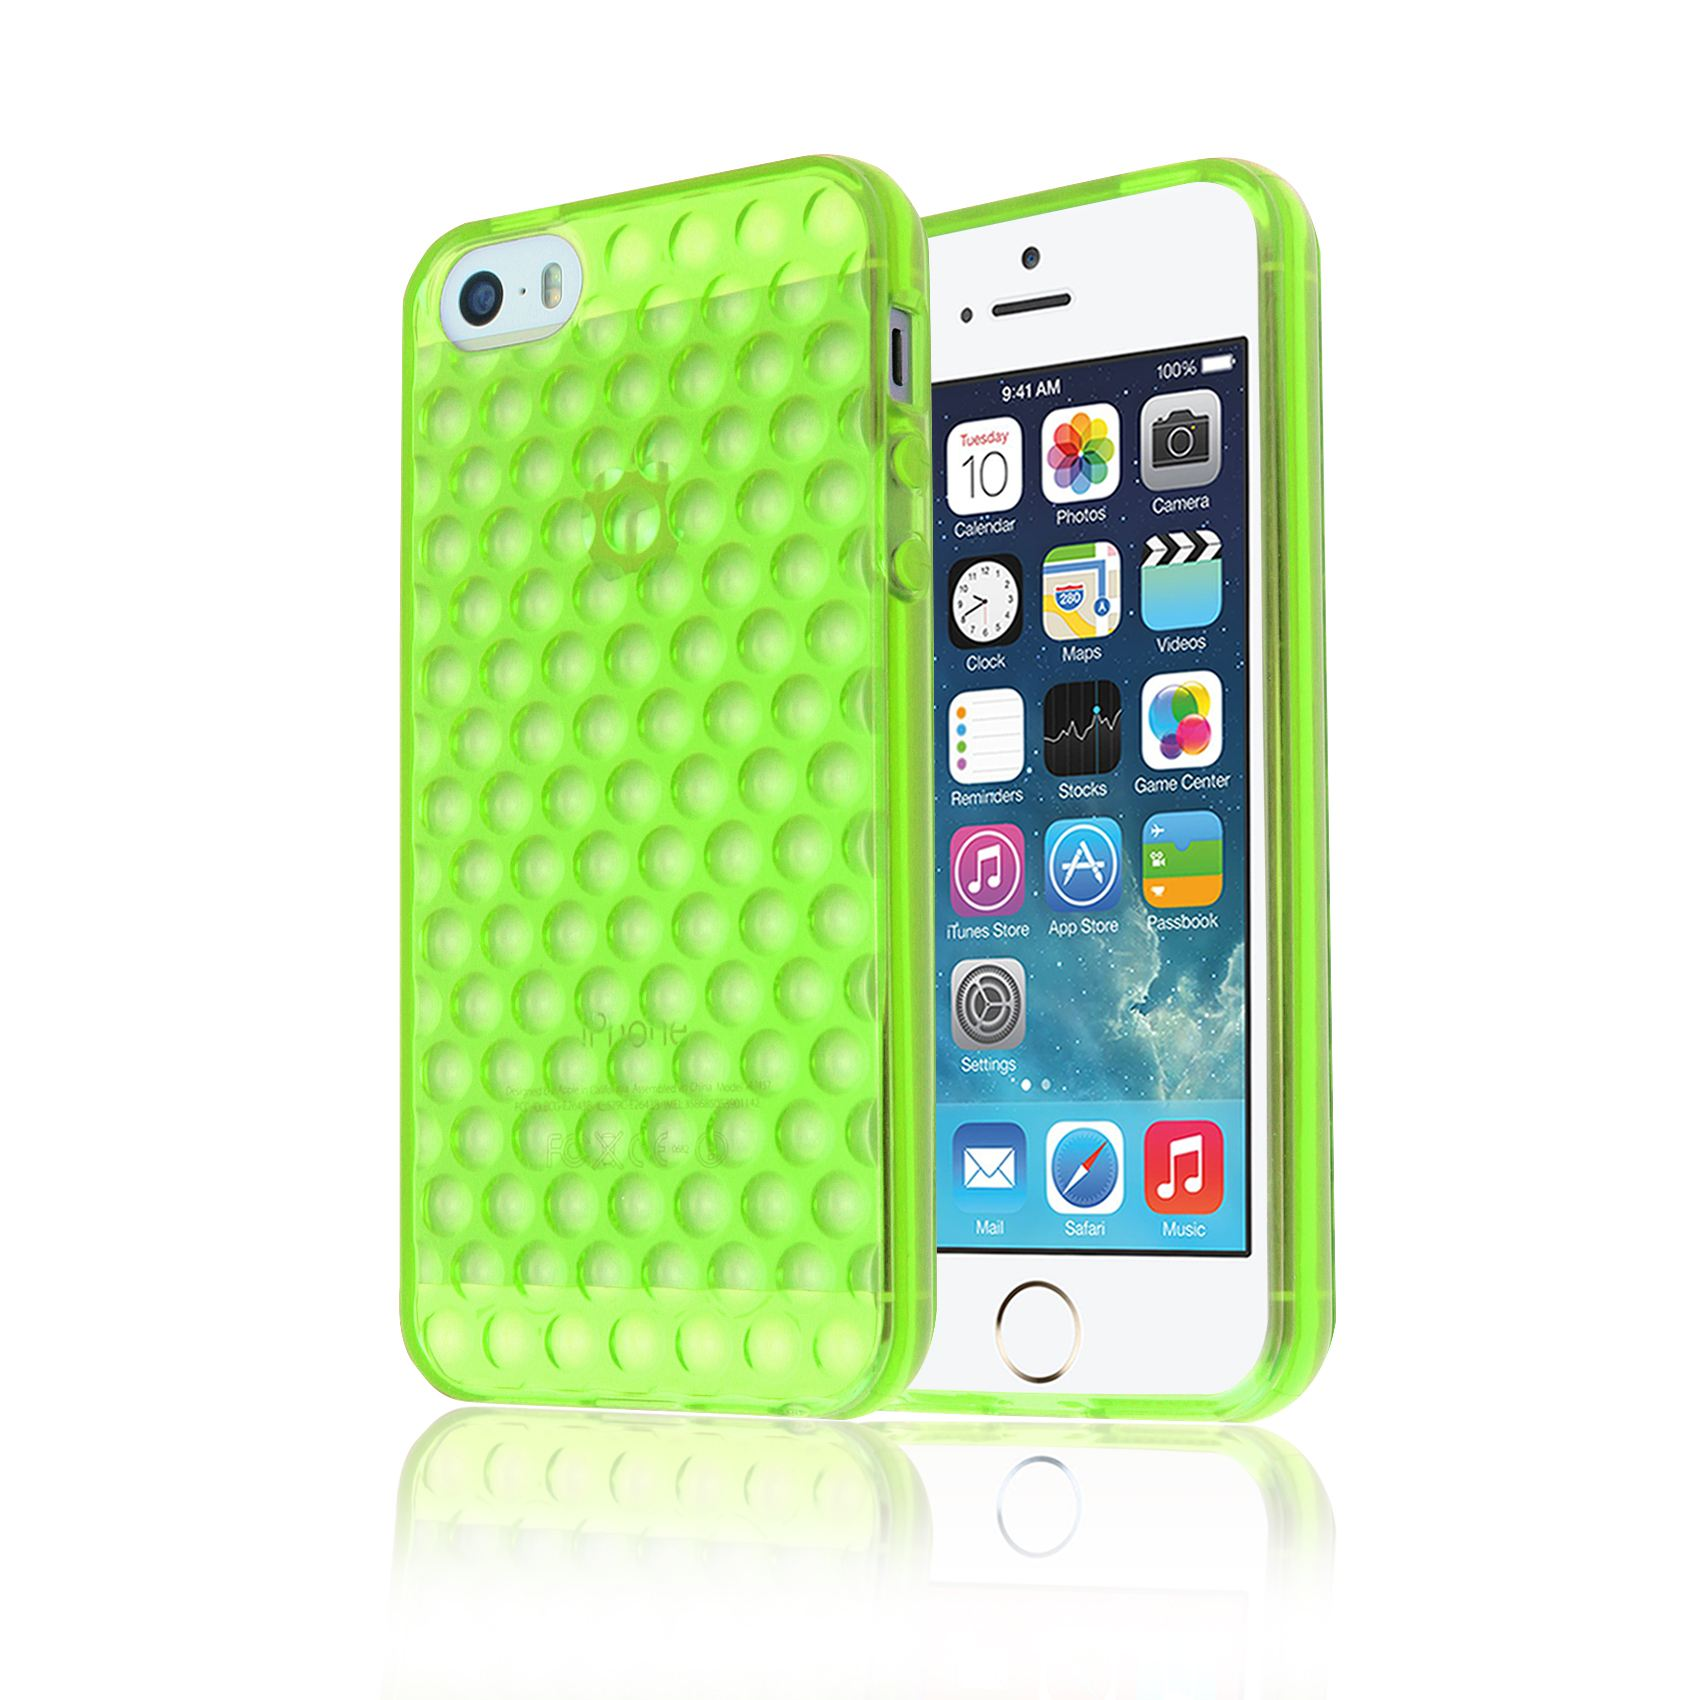 Squishy Gel Iphone Case : BUBBLE TPU GEL TRANSPARENT CLEAR SOFT CASE BACK COVER FOR IPHONE SE/5S/5 eBay